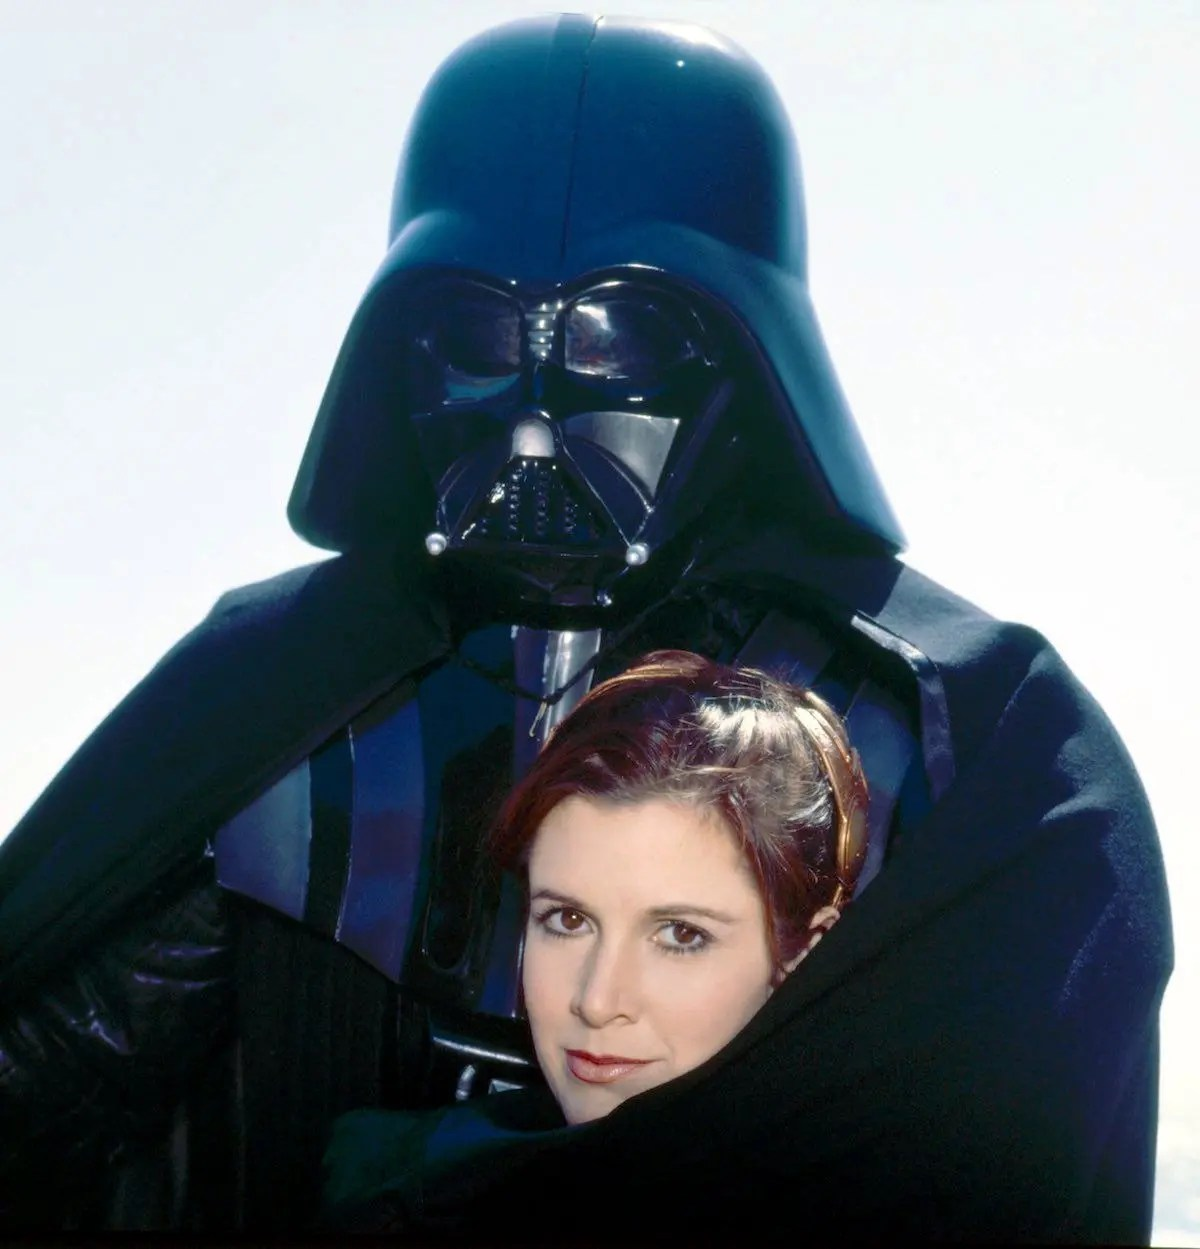 Cool Old Photo - Darth Vader with Princess Leia - 1983